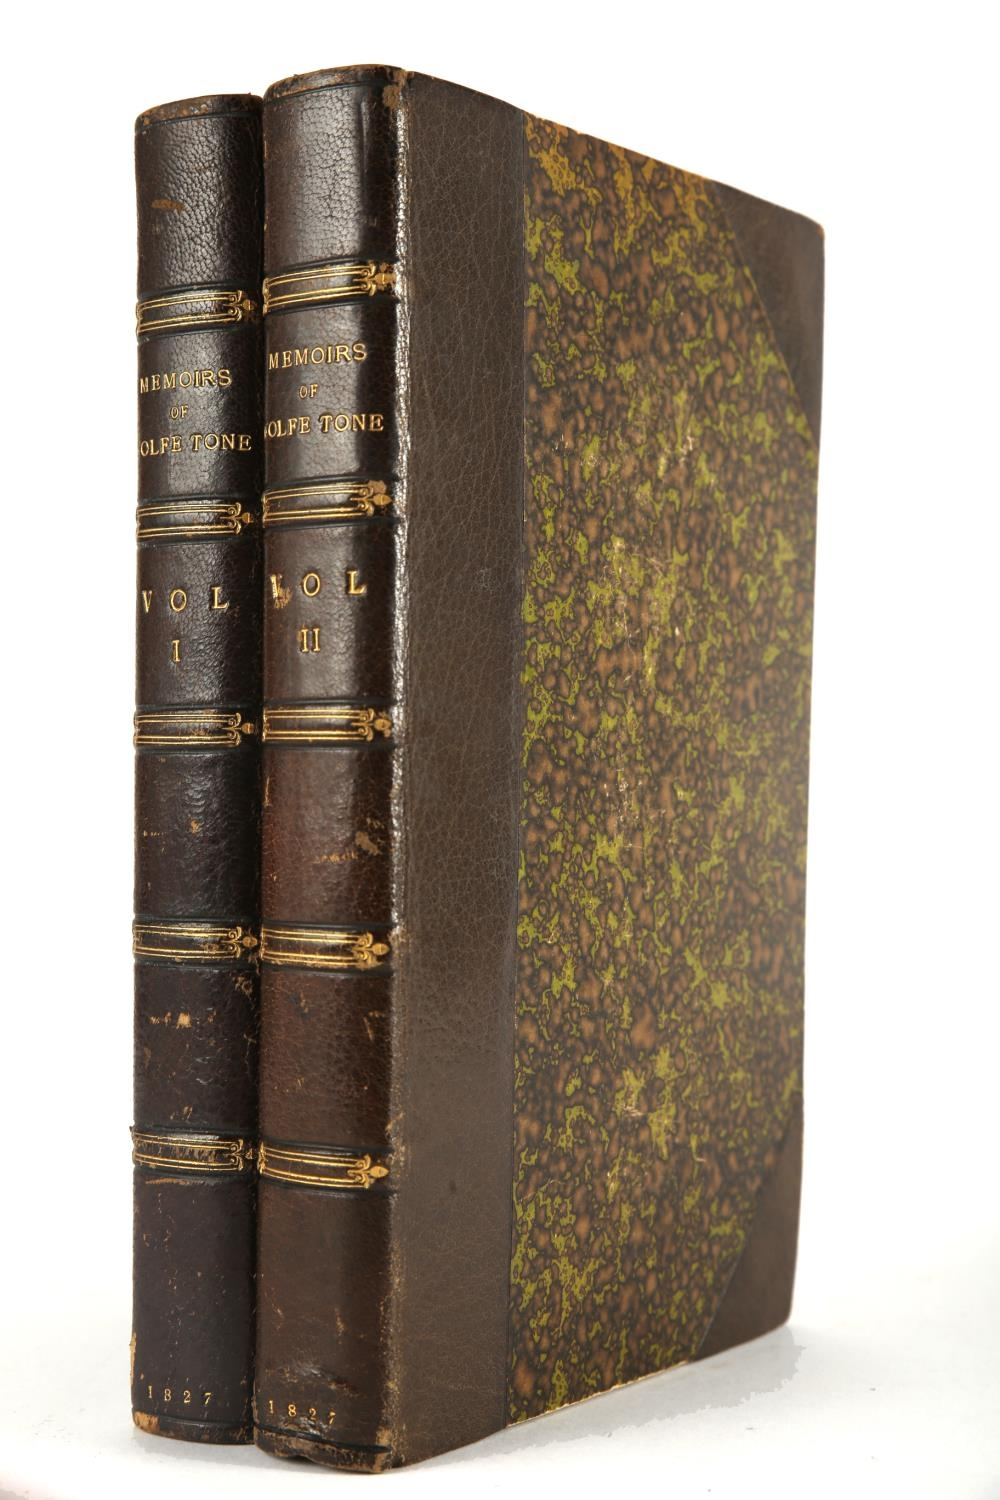 Wolfe Tone, Theobald. Memoirs of Theobald Wolfe Tone: Written By Himself, Comprising a Complete